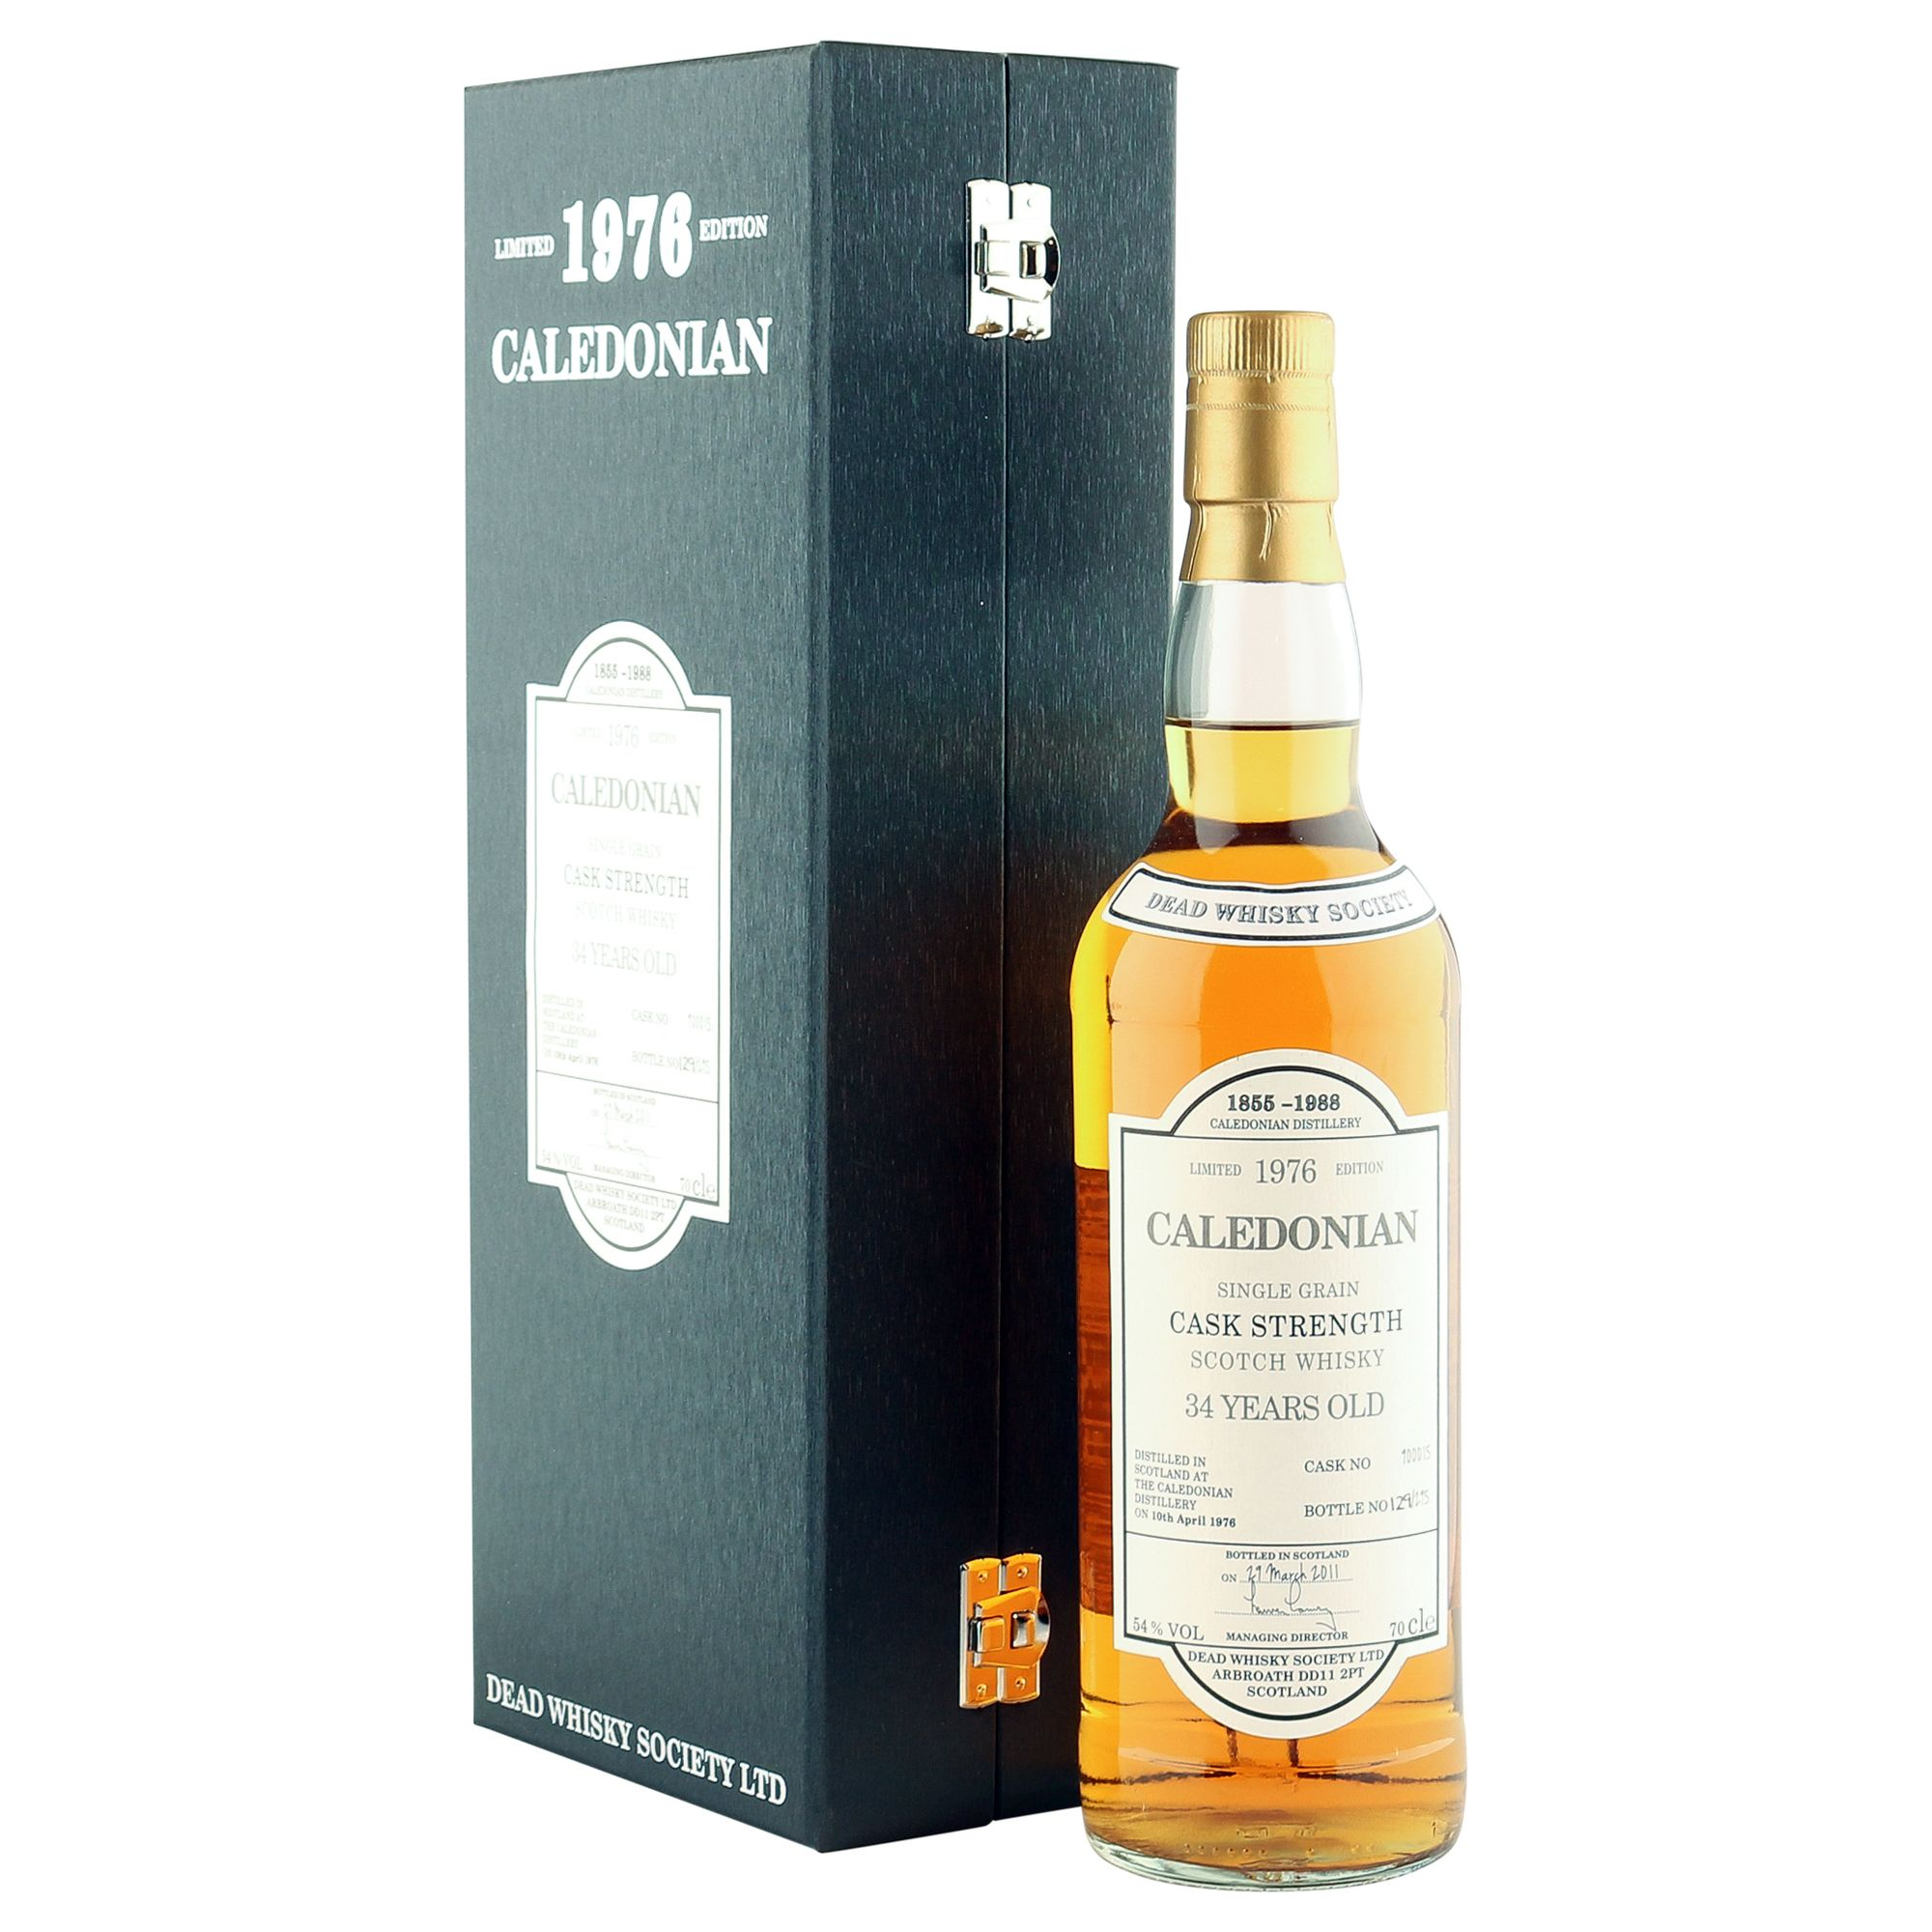 Caledonian 1976 34 Year Old, Dead Whisky Society 2011 Bottling